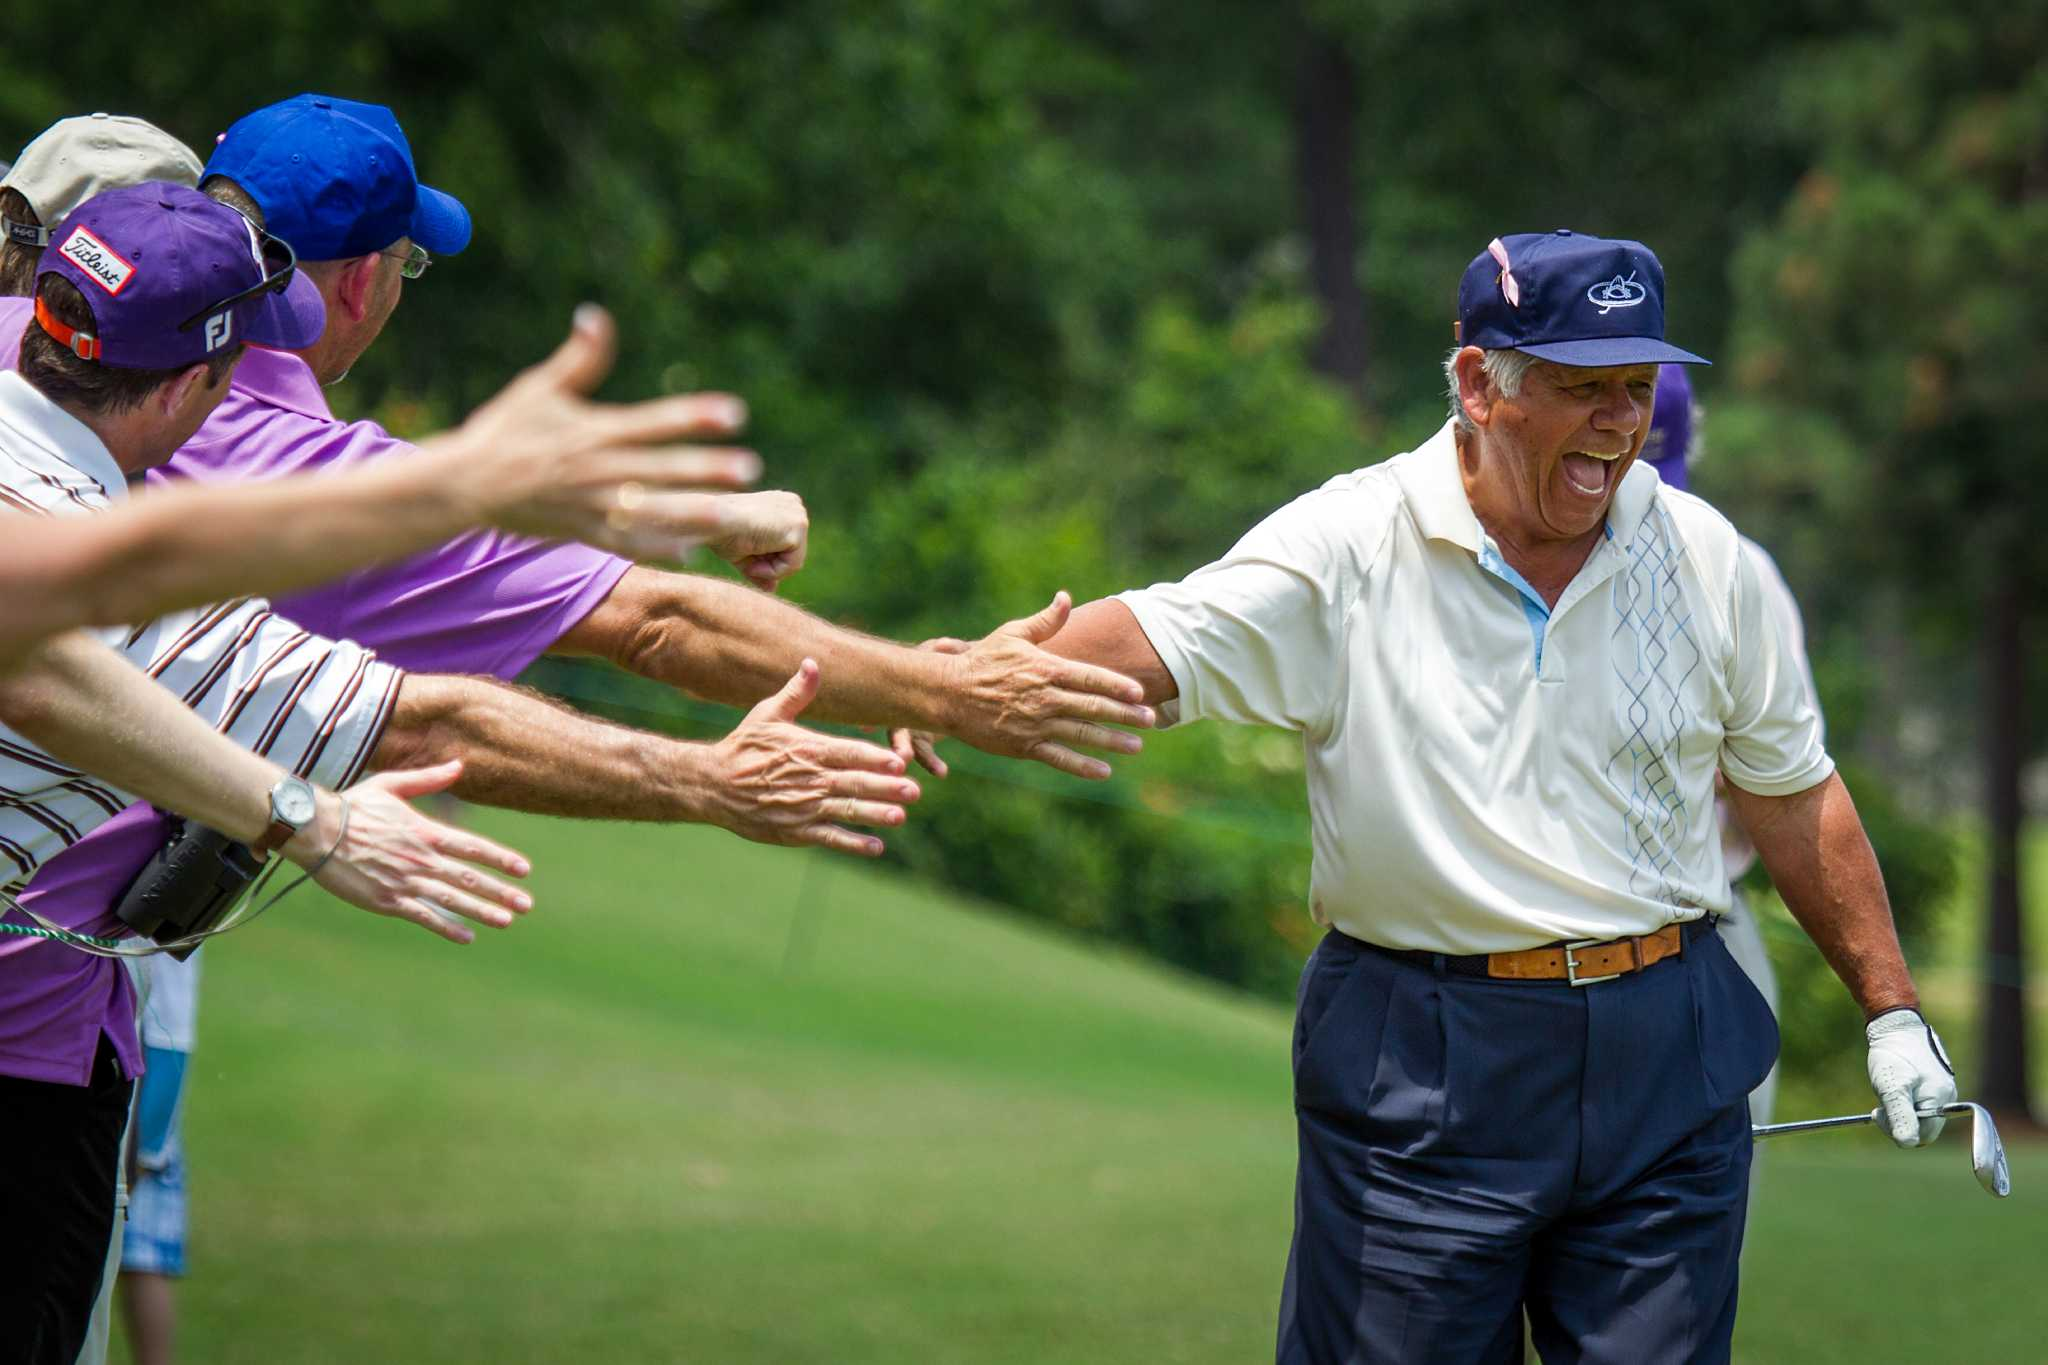 Golfer Lee Trevino S North Dallas Home On The Market For